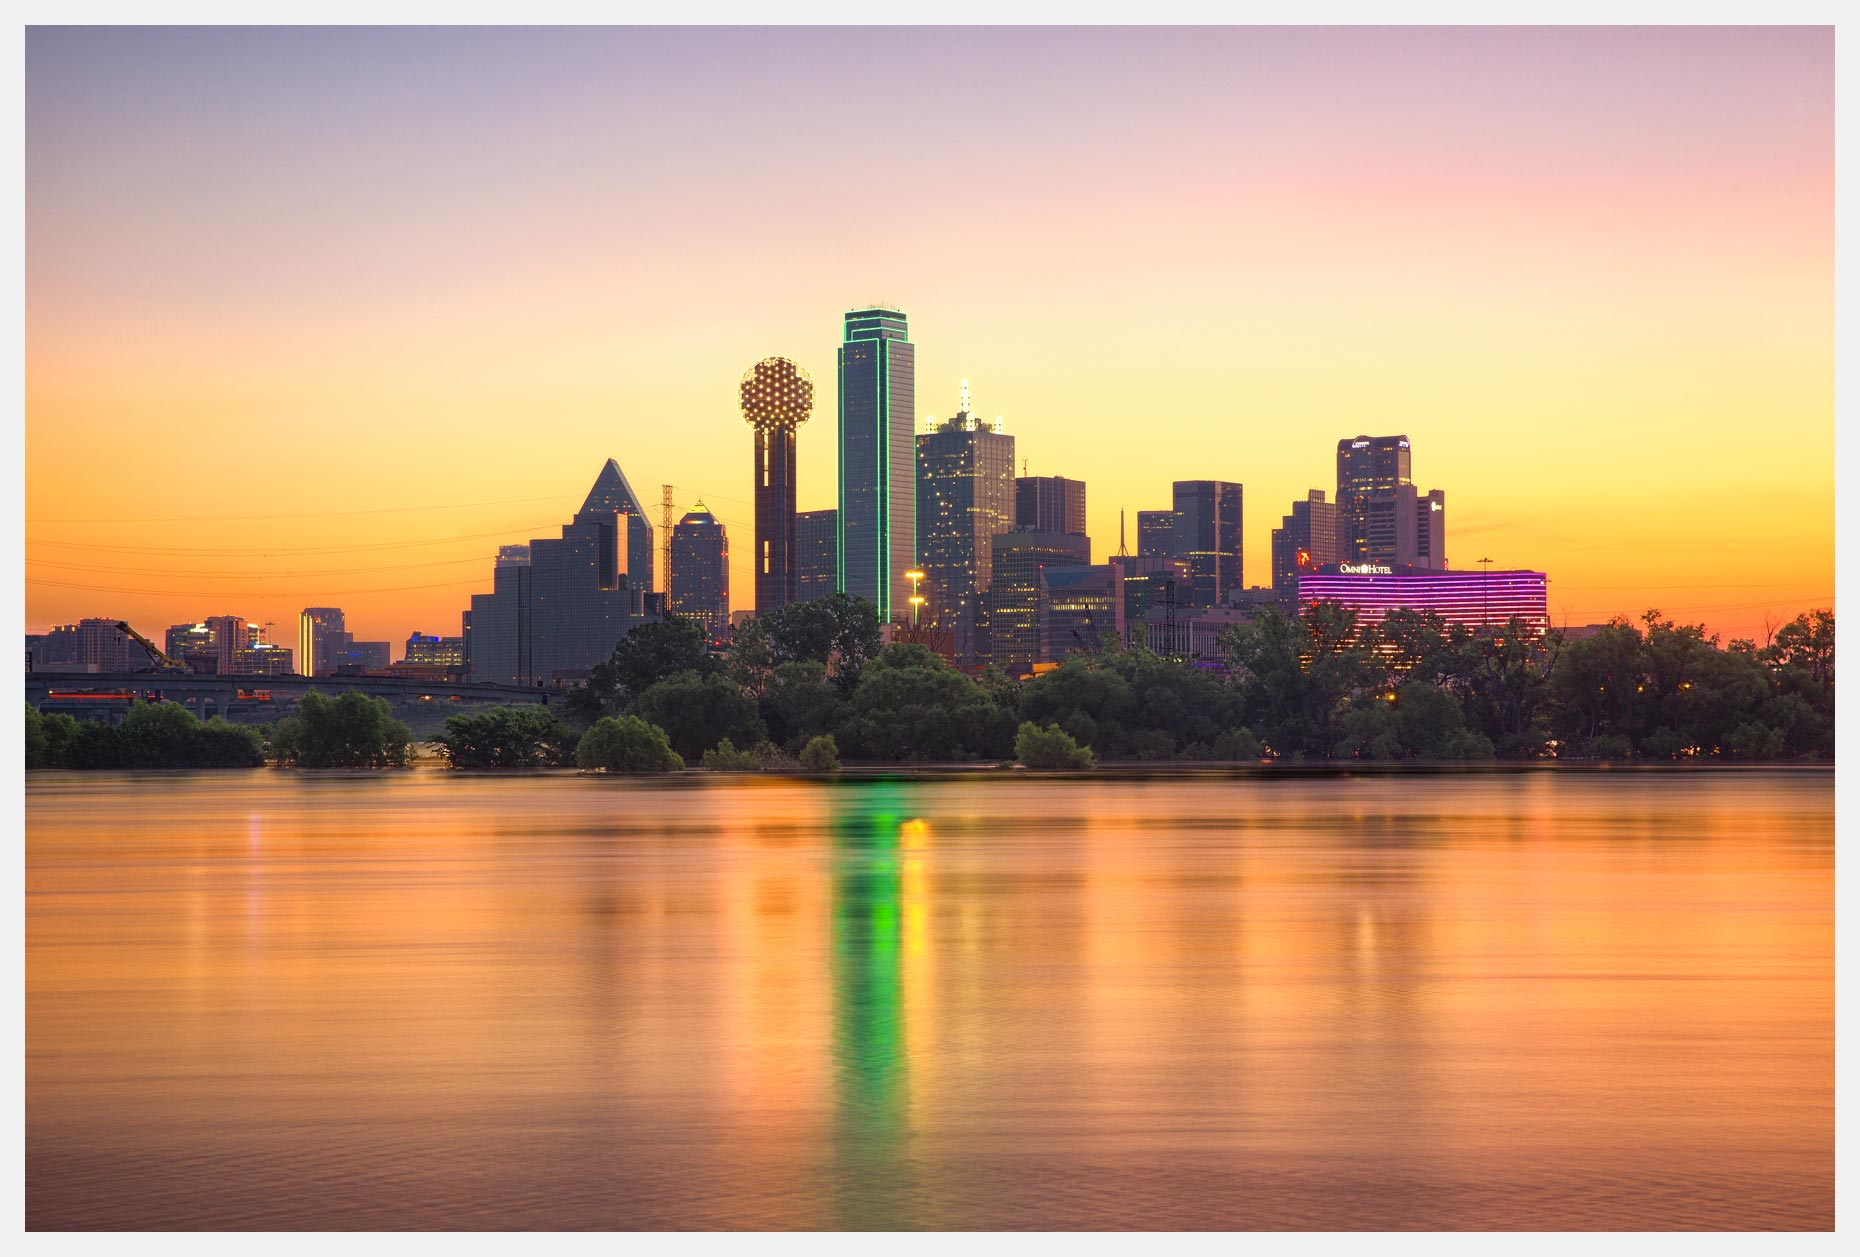 Dallas Skyline at Sunrise